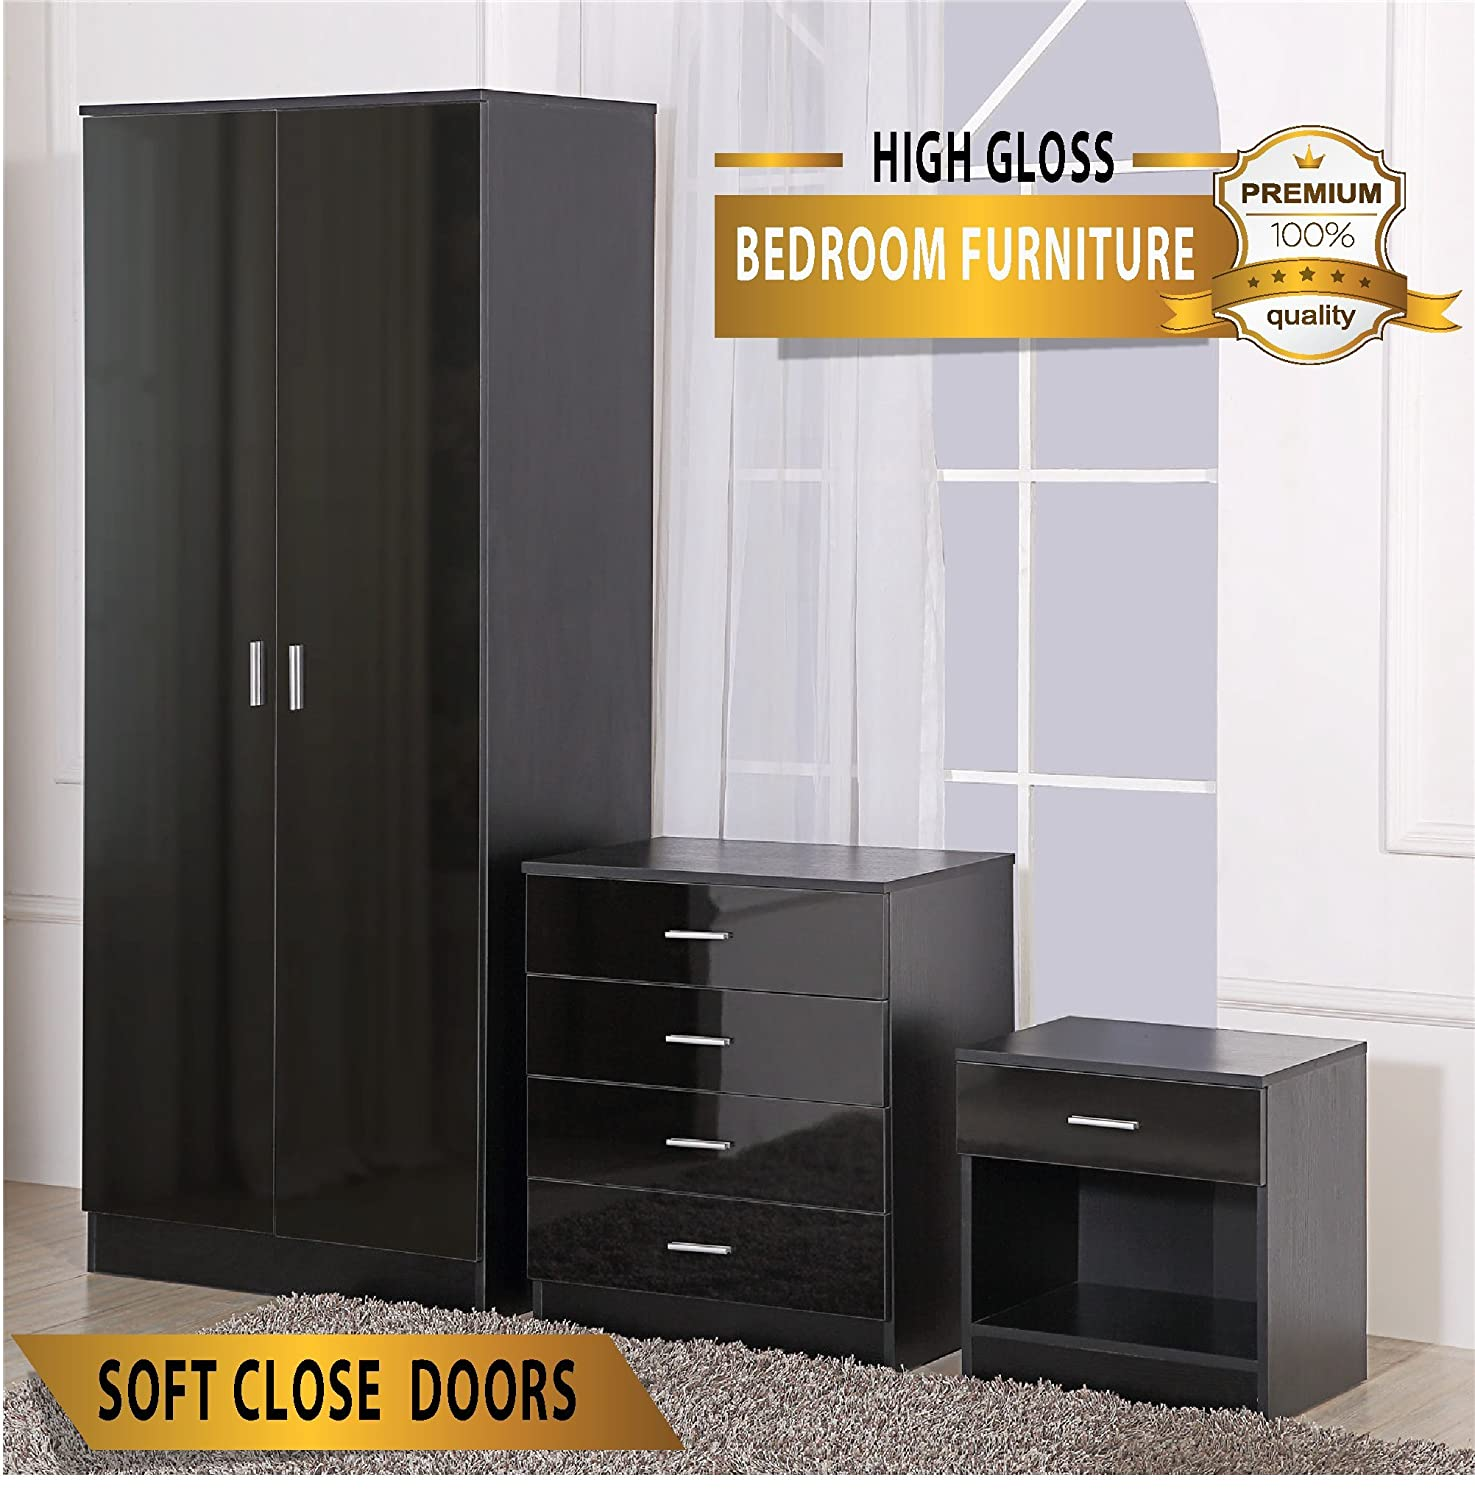 OSSOTTO HIGH GLOSS 3 Piece Bedroom Furniture Set Includes Soft